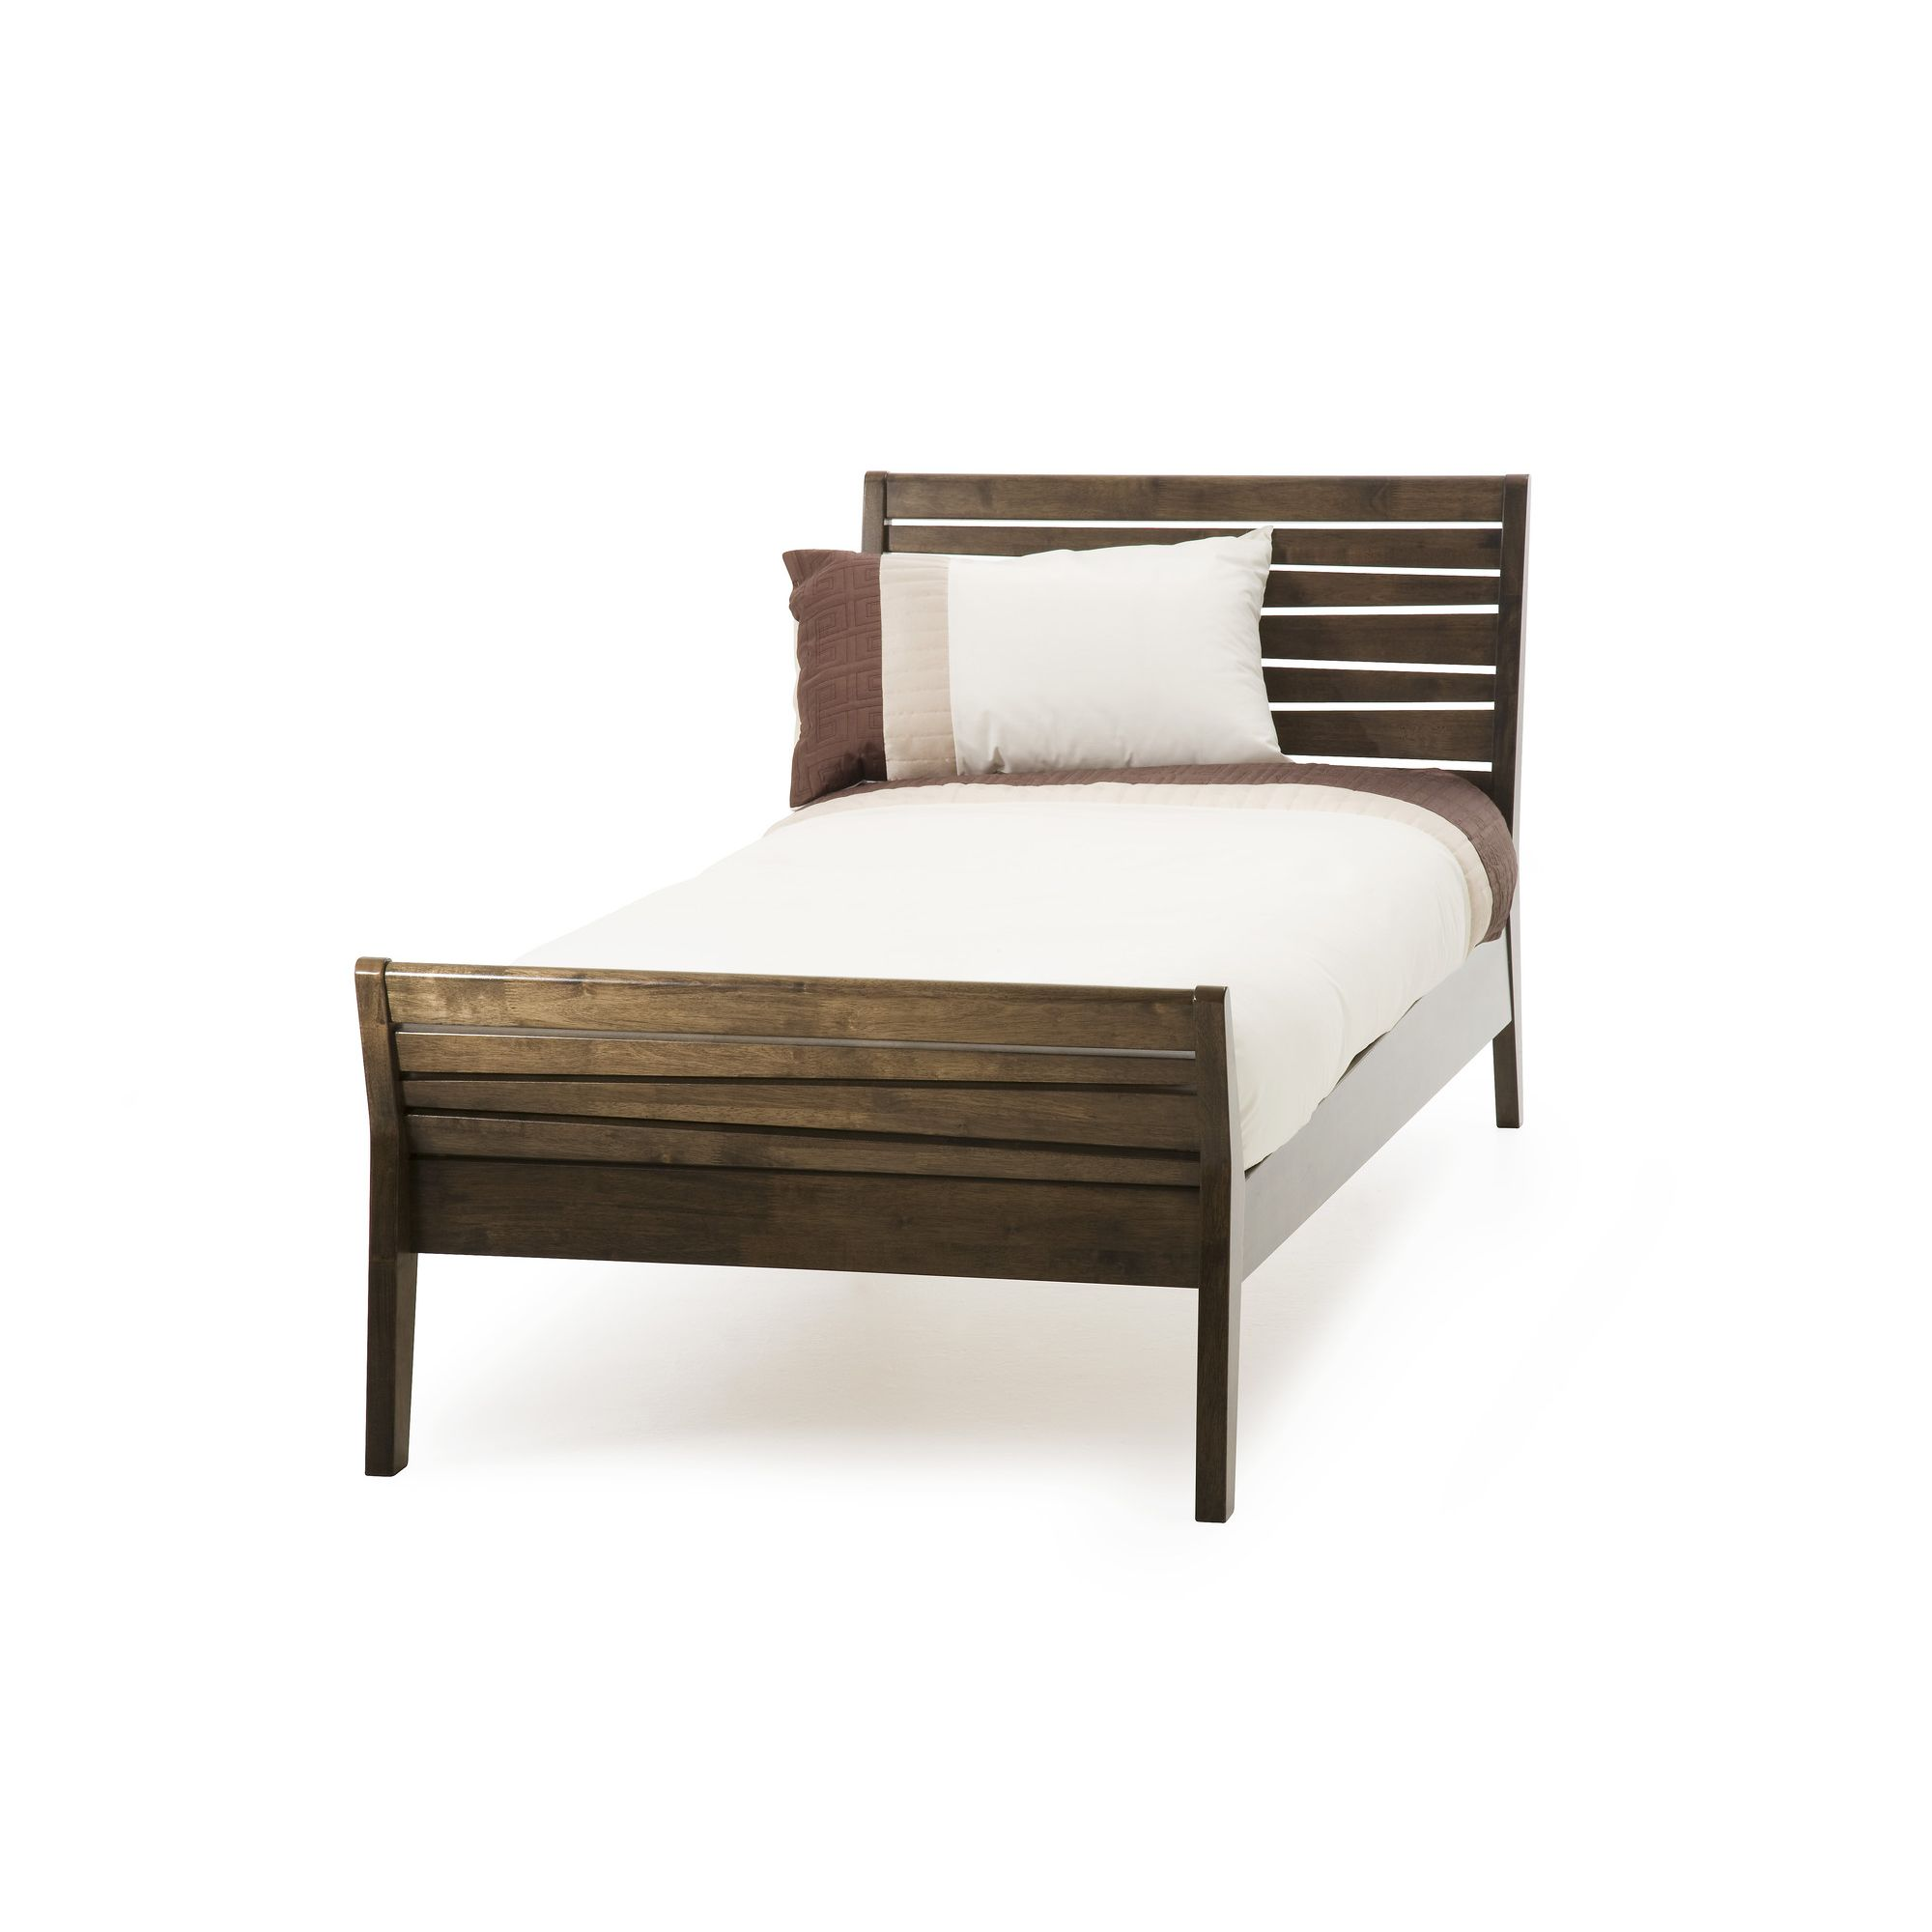 Serene Furnishings Zahra Bed - Single - Walnut at Tesco Direct